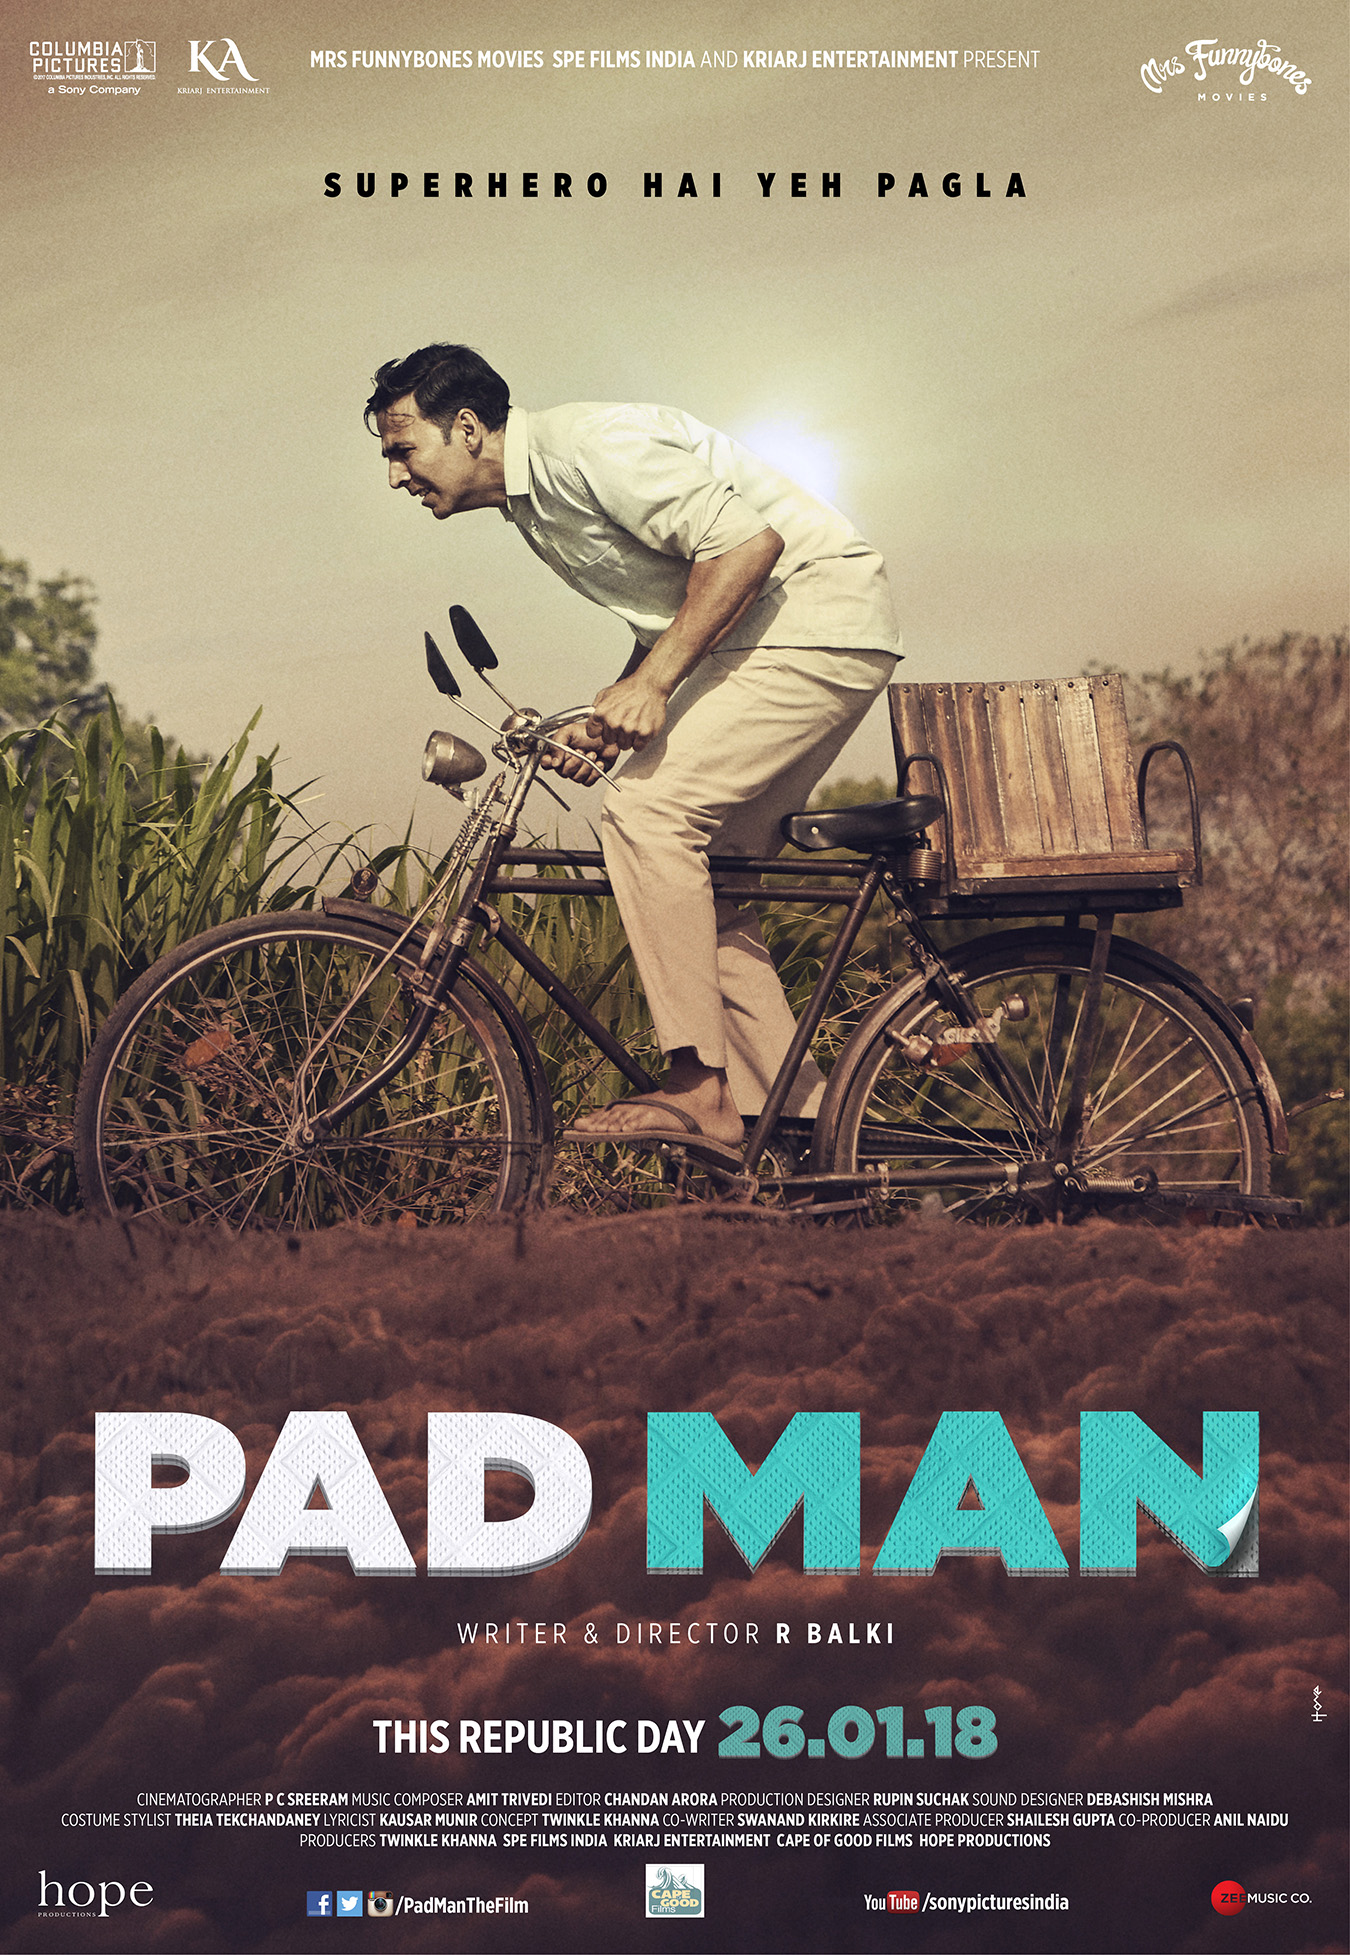 NOT YOUR AVERAGE SUPERHERO FILM:  AKSHAY KUMAR FIGHTS FOR MENSTURAL HYGIENE AS PAD MAN